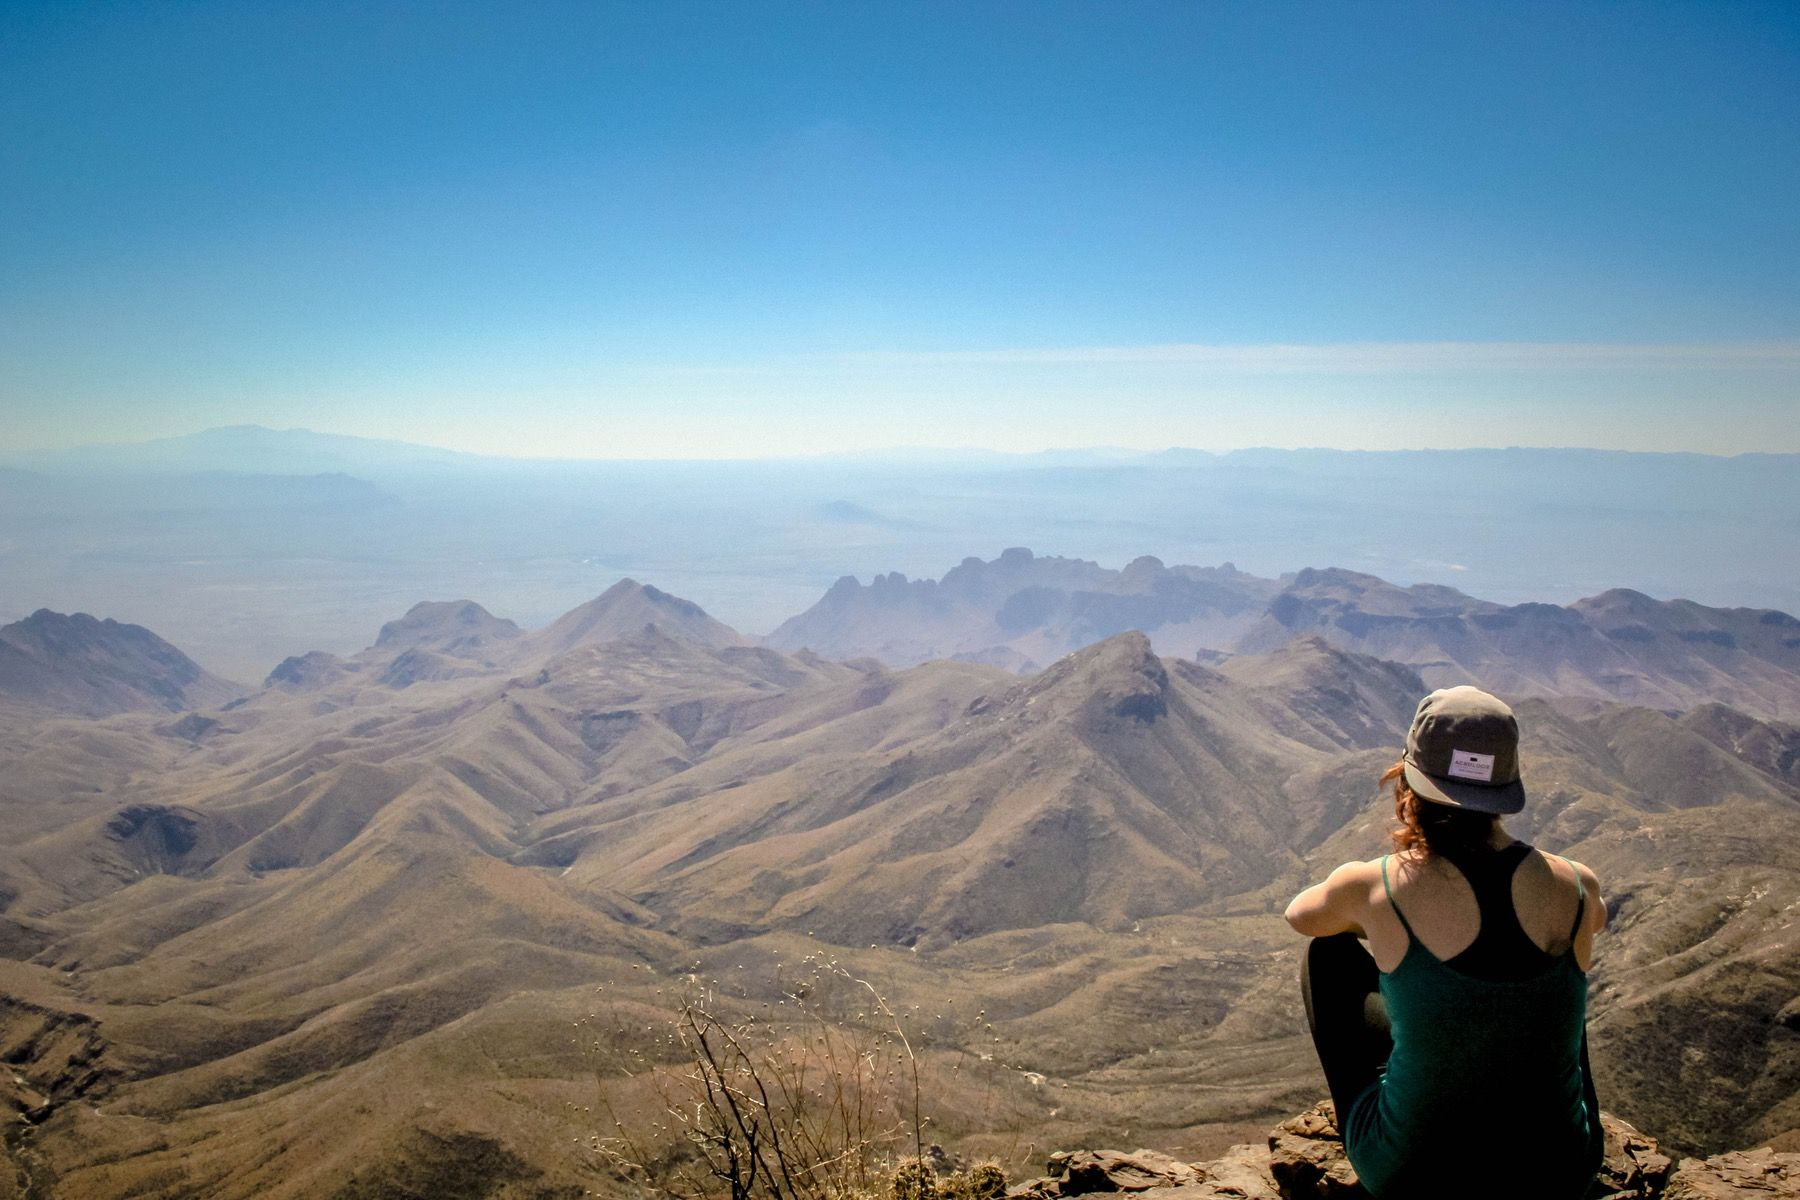 Big Bend National park is one of the largest, most remote, and least visited national parks in the continental U.S.